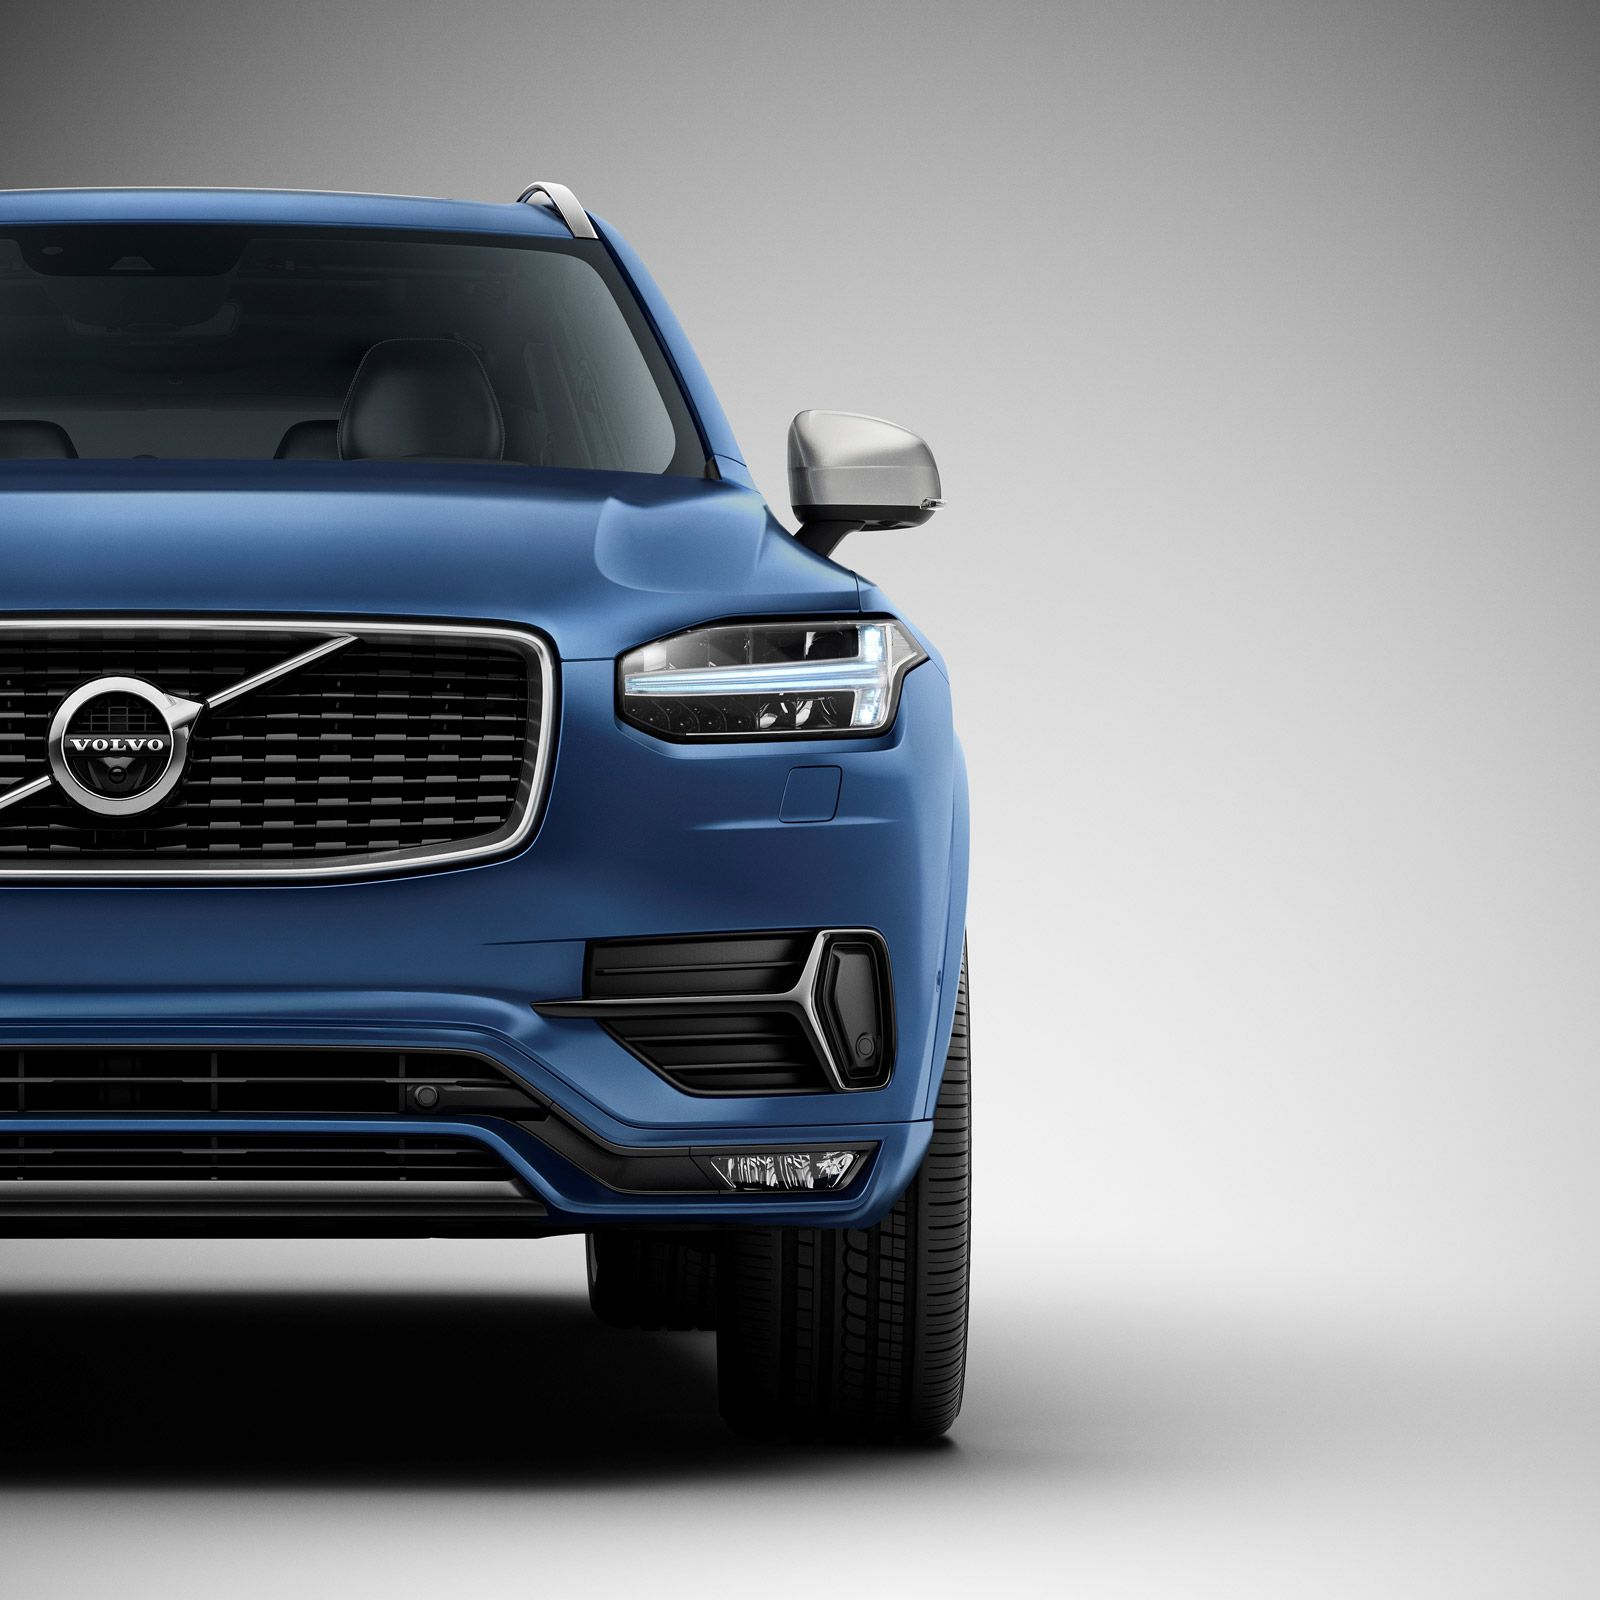 2016 volvo xc70 pic all new 2016 volvo xc80 followup crossover to the next xc90 the 2016 volvo xc70 has generous c pinteres